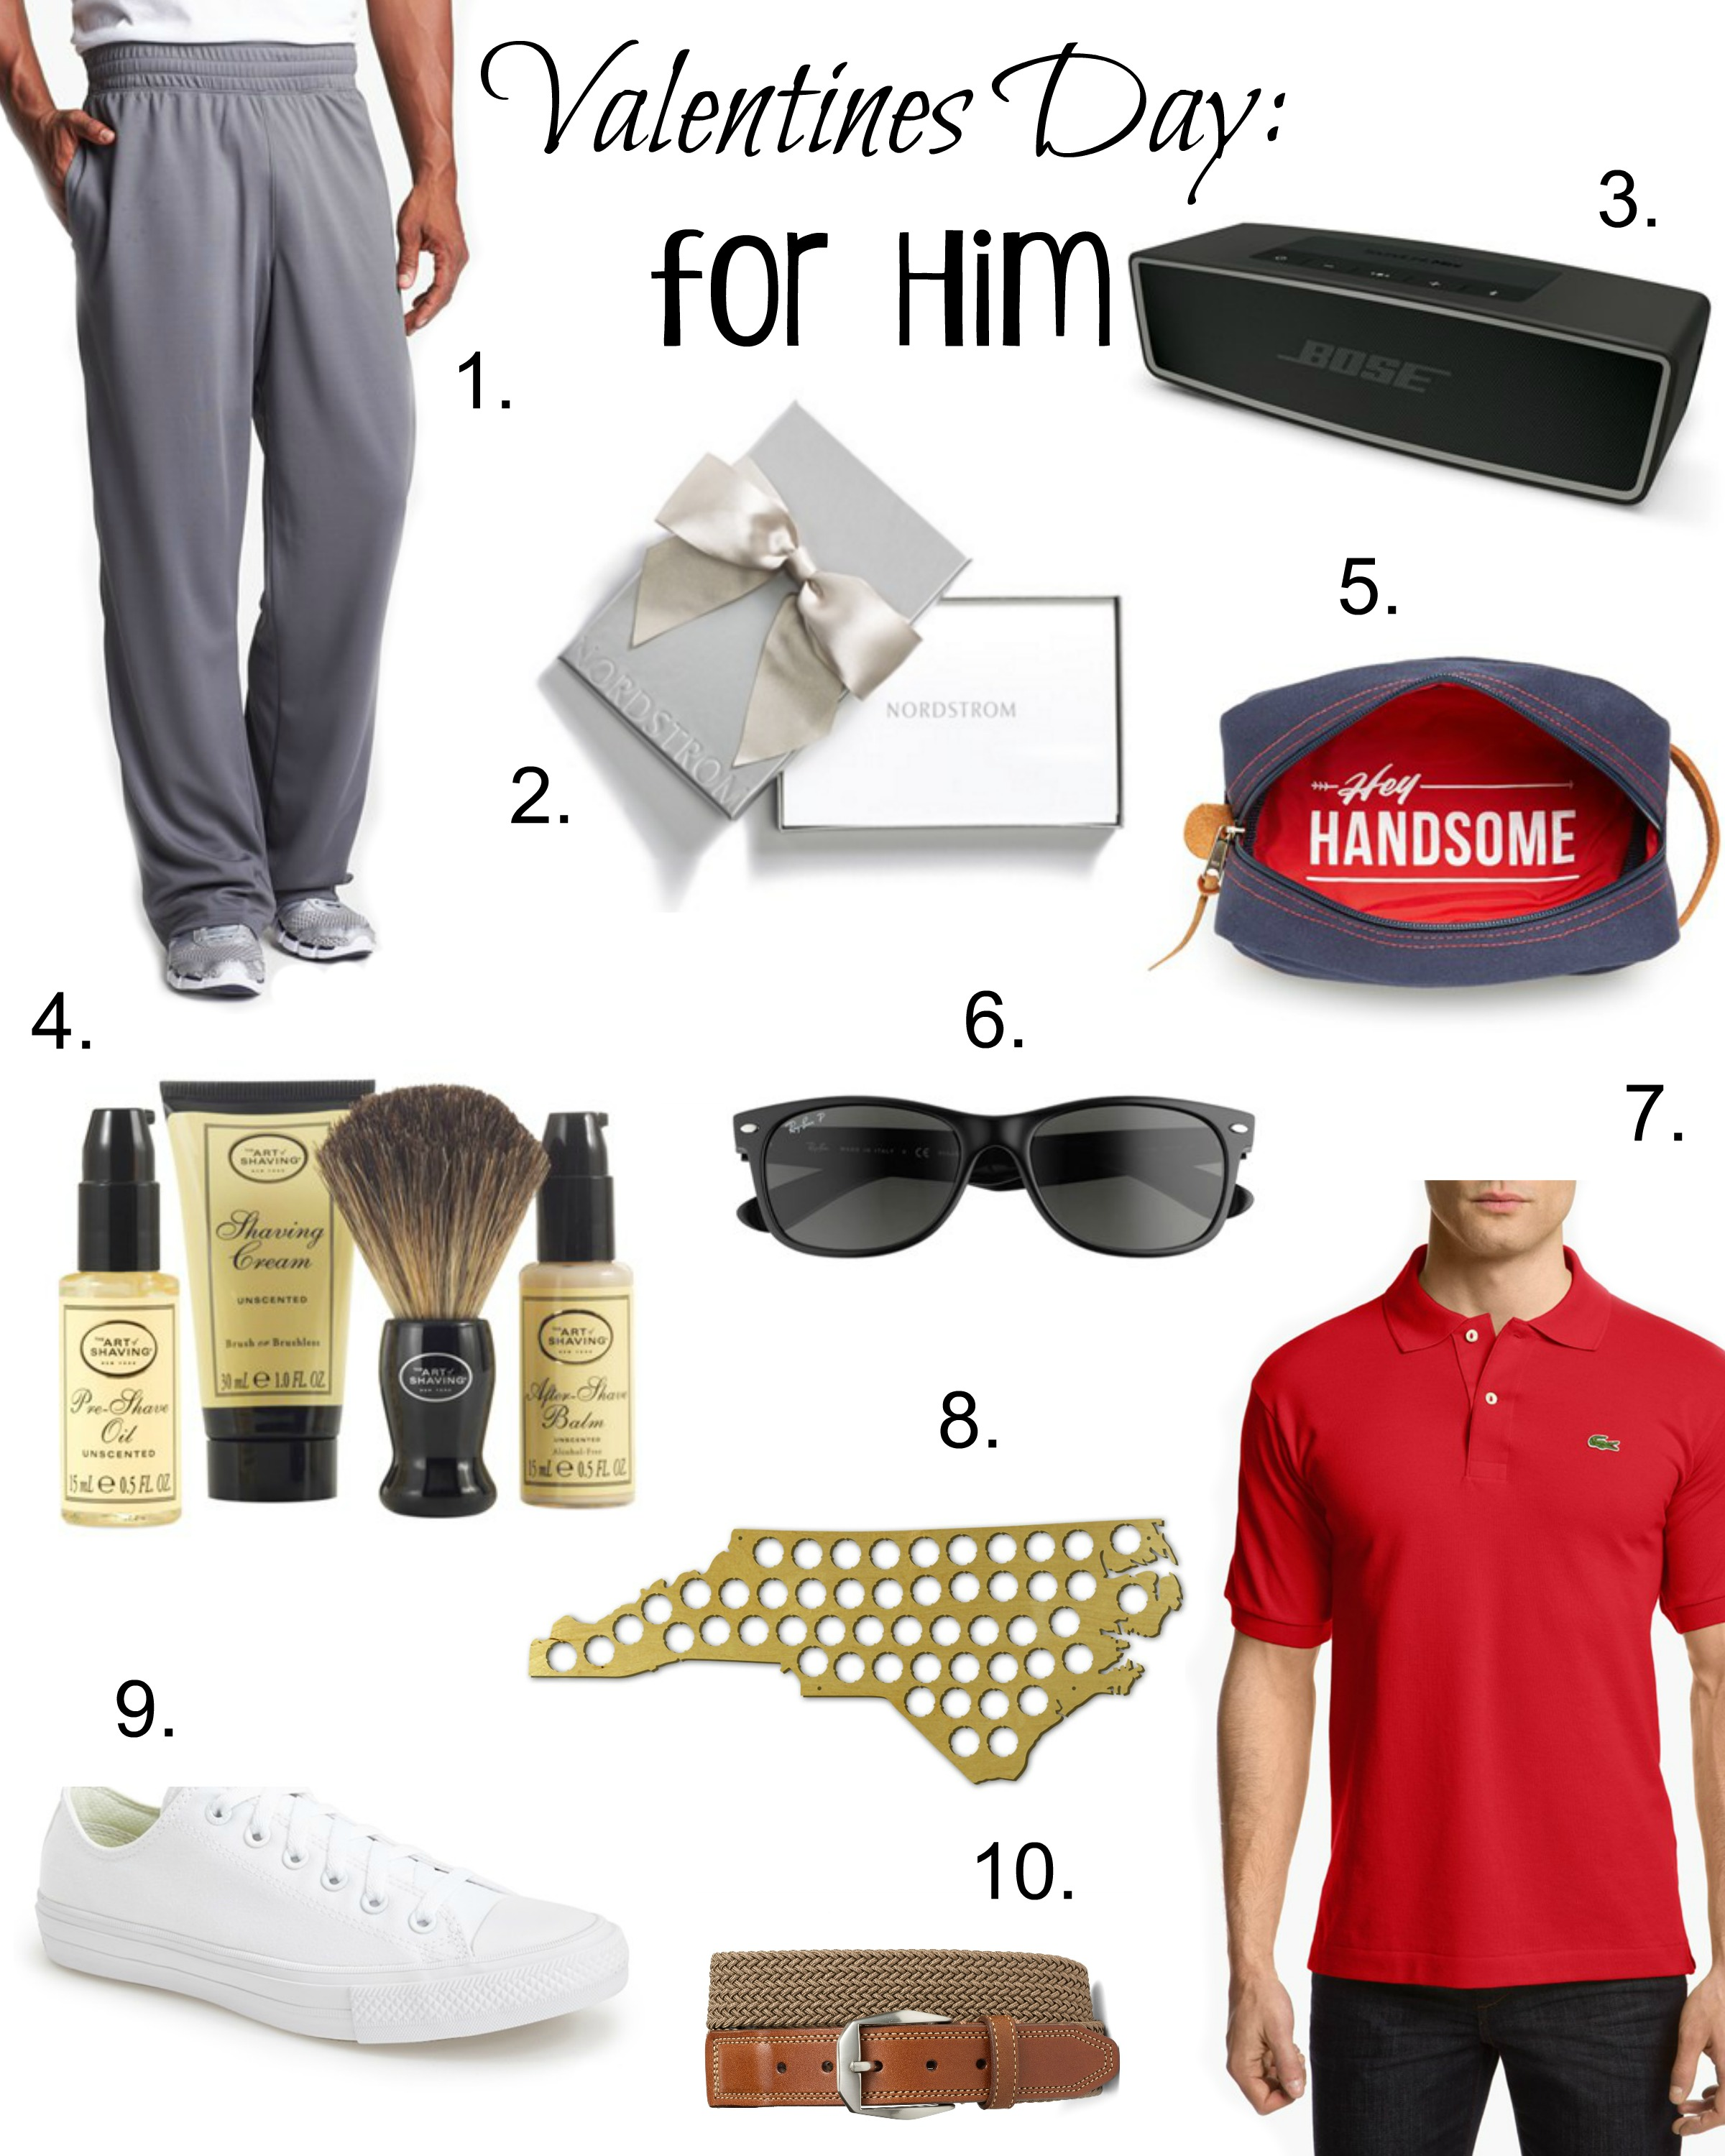 10 Valentines Day Gifts For Him Coffee Beans And Bobby Pins: best valentine gifts for him